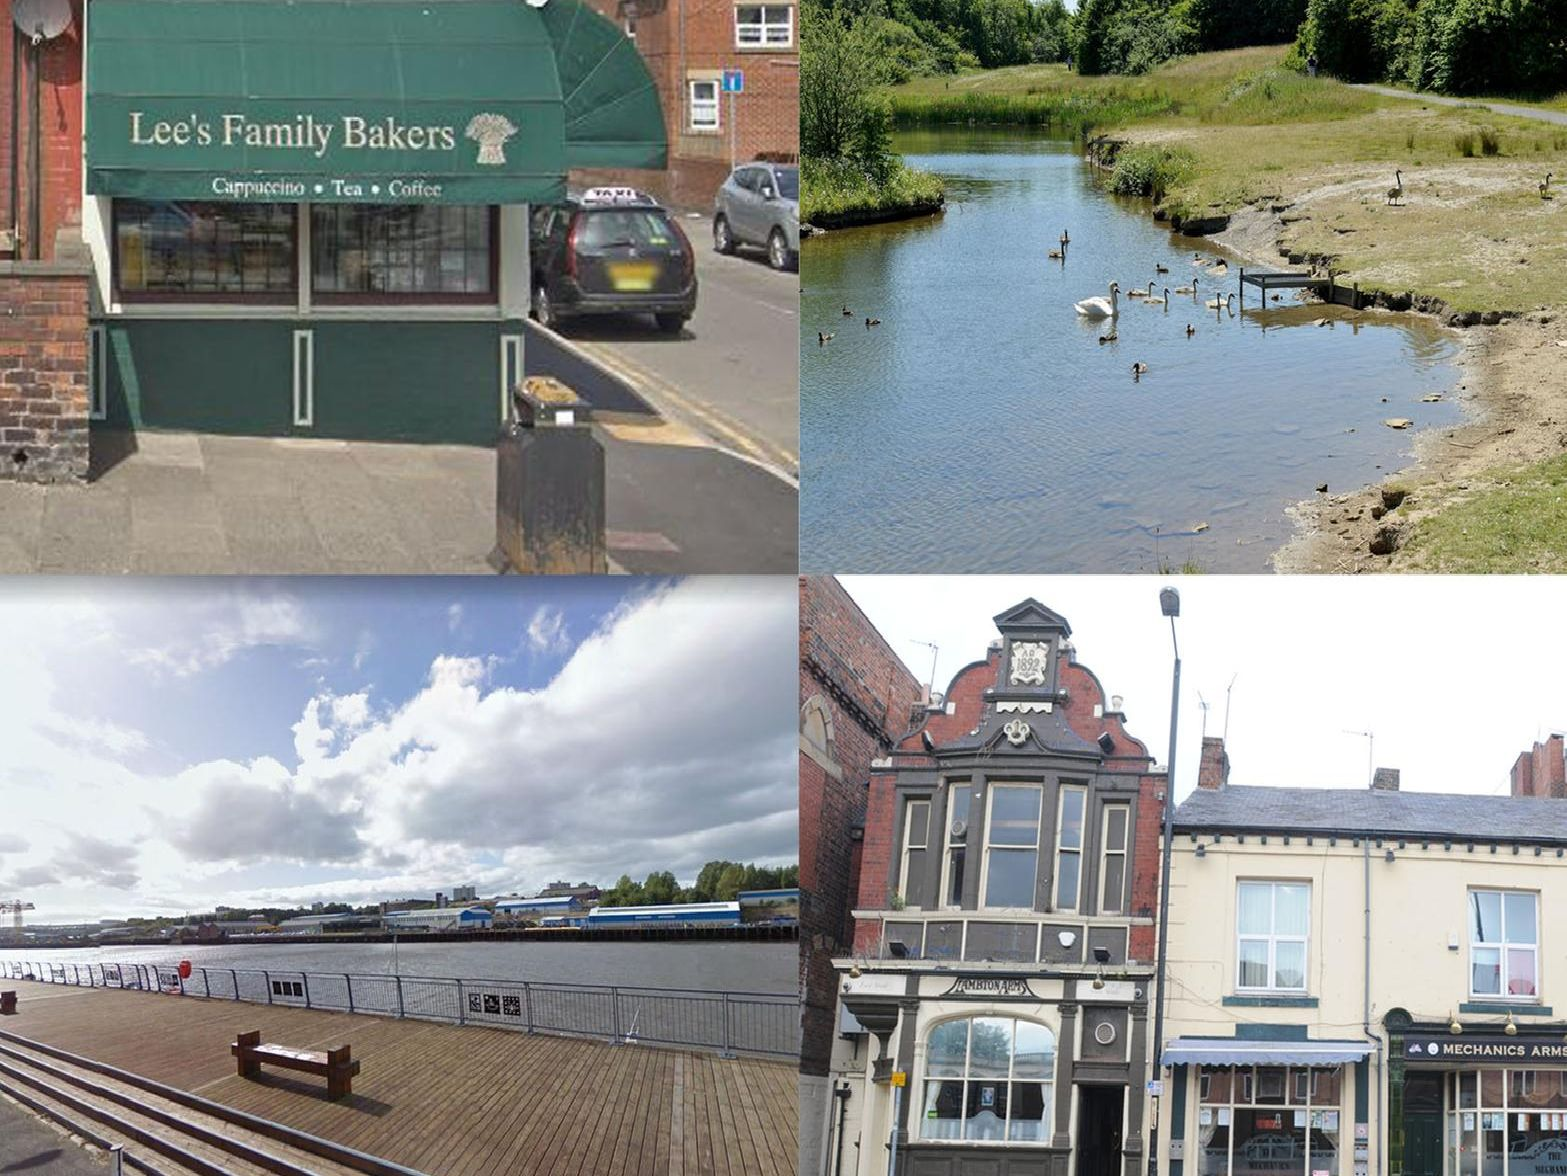 A look at some of South Tyneside's hidden gems and little-known facts